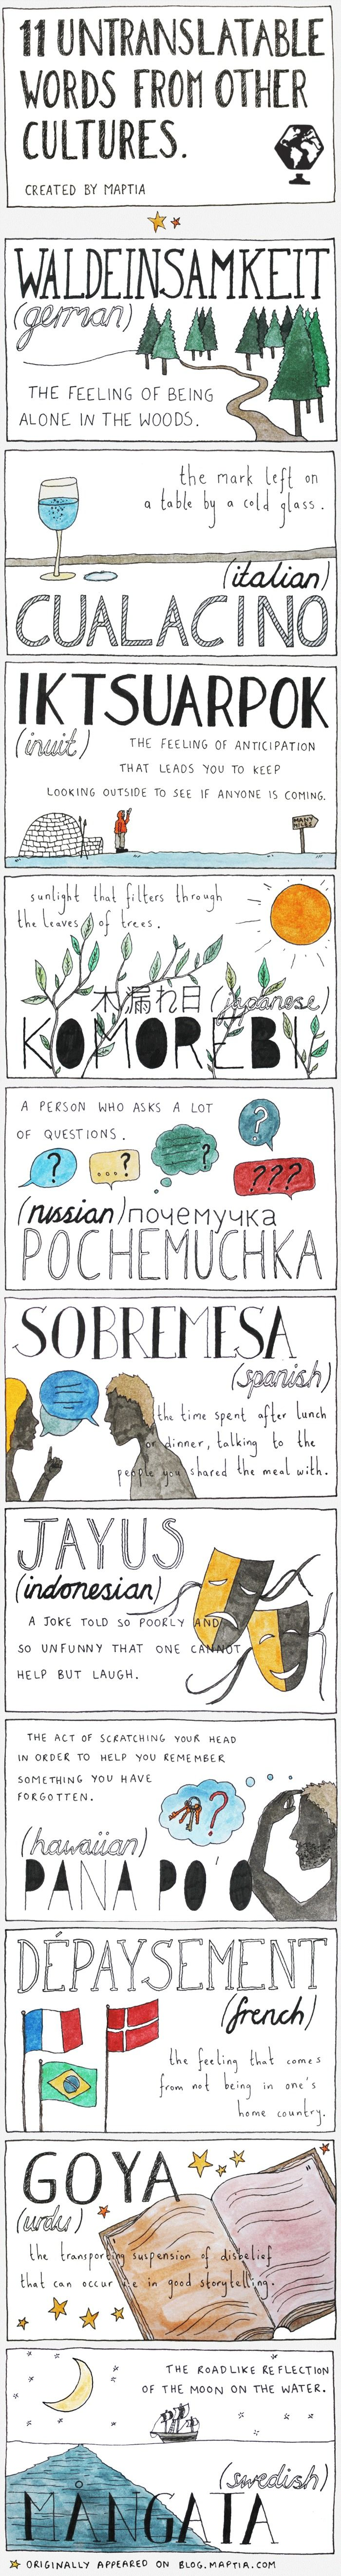 11 Untranslatable Words From Other Cultures. It's missing the portuguese word Saudade: a deep emotional state of nostalgic or deeply melancholic longing for an absent something or someone that one loves.